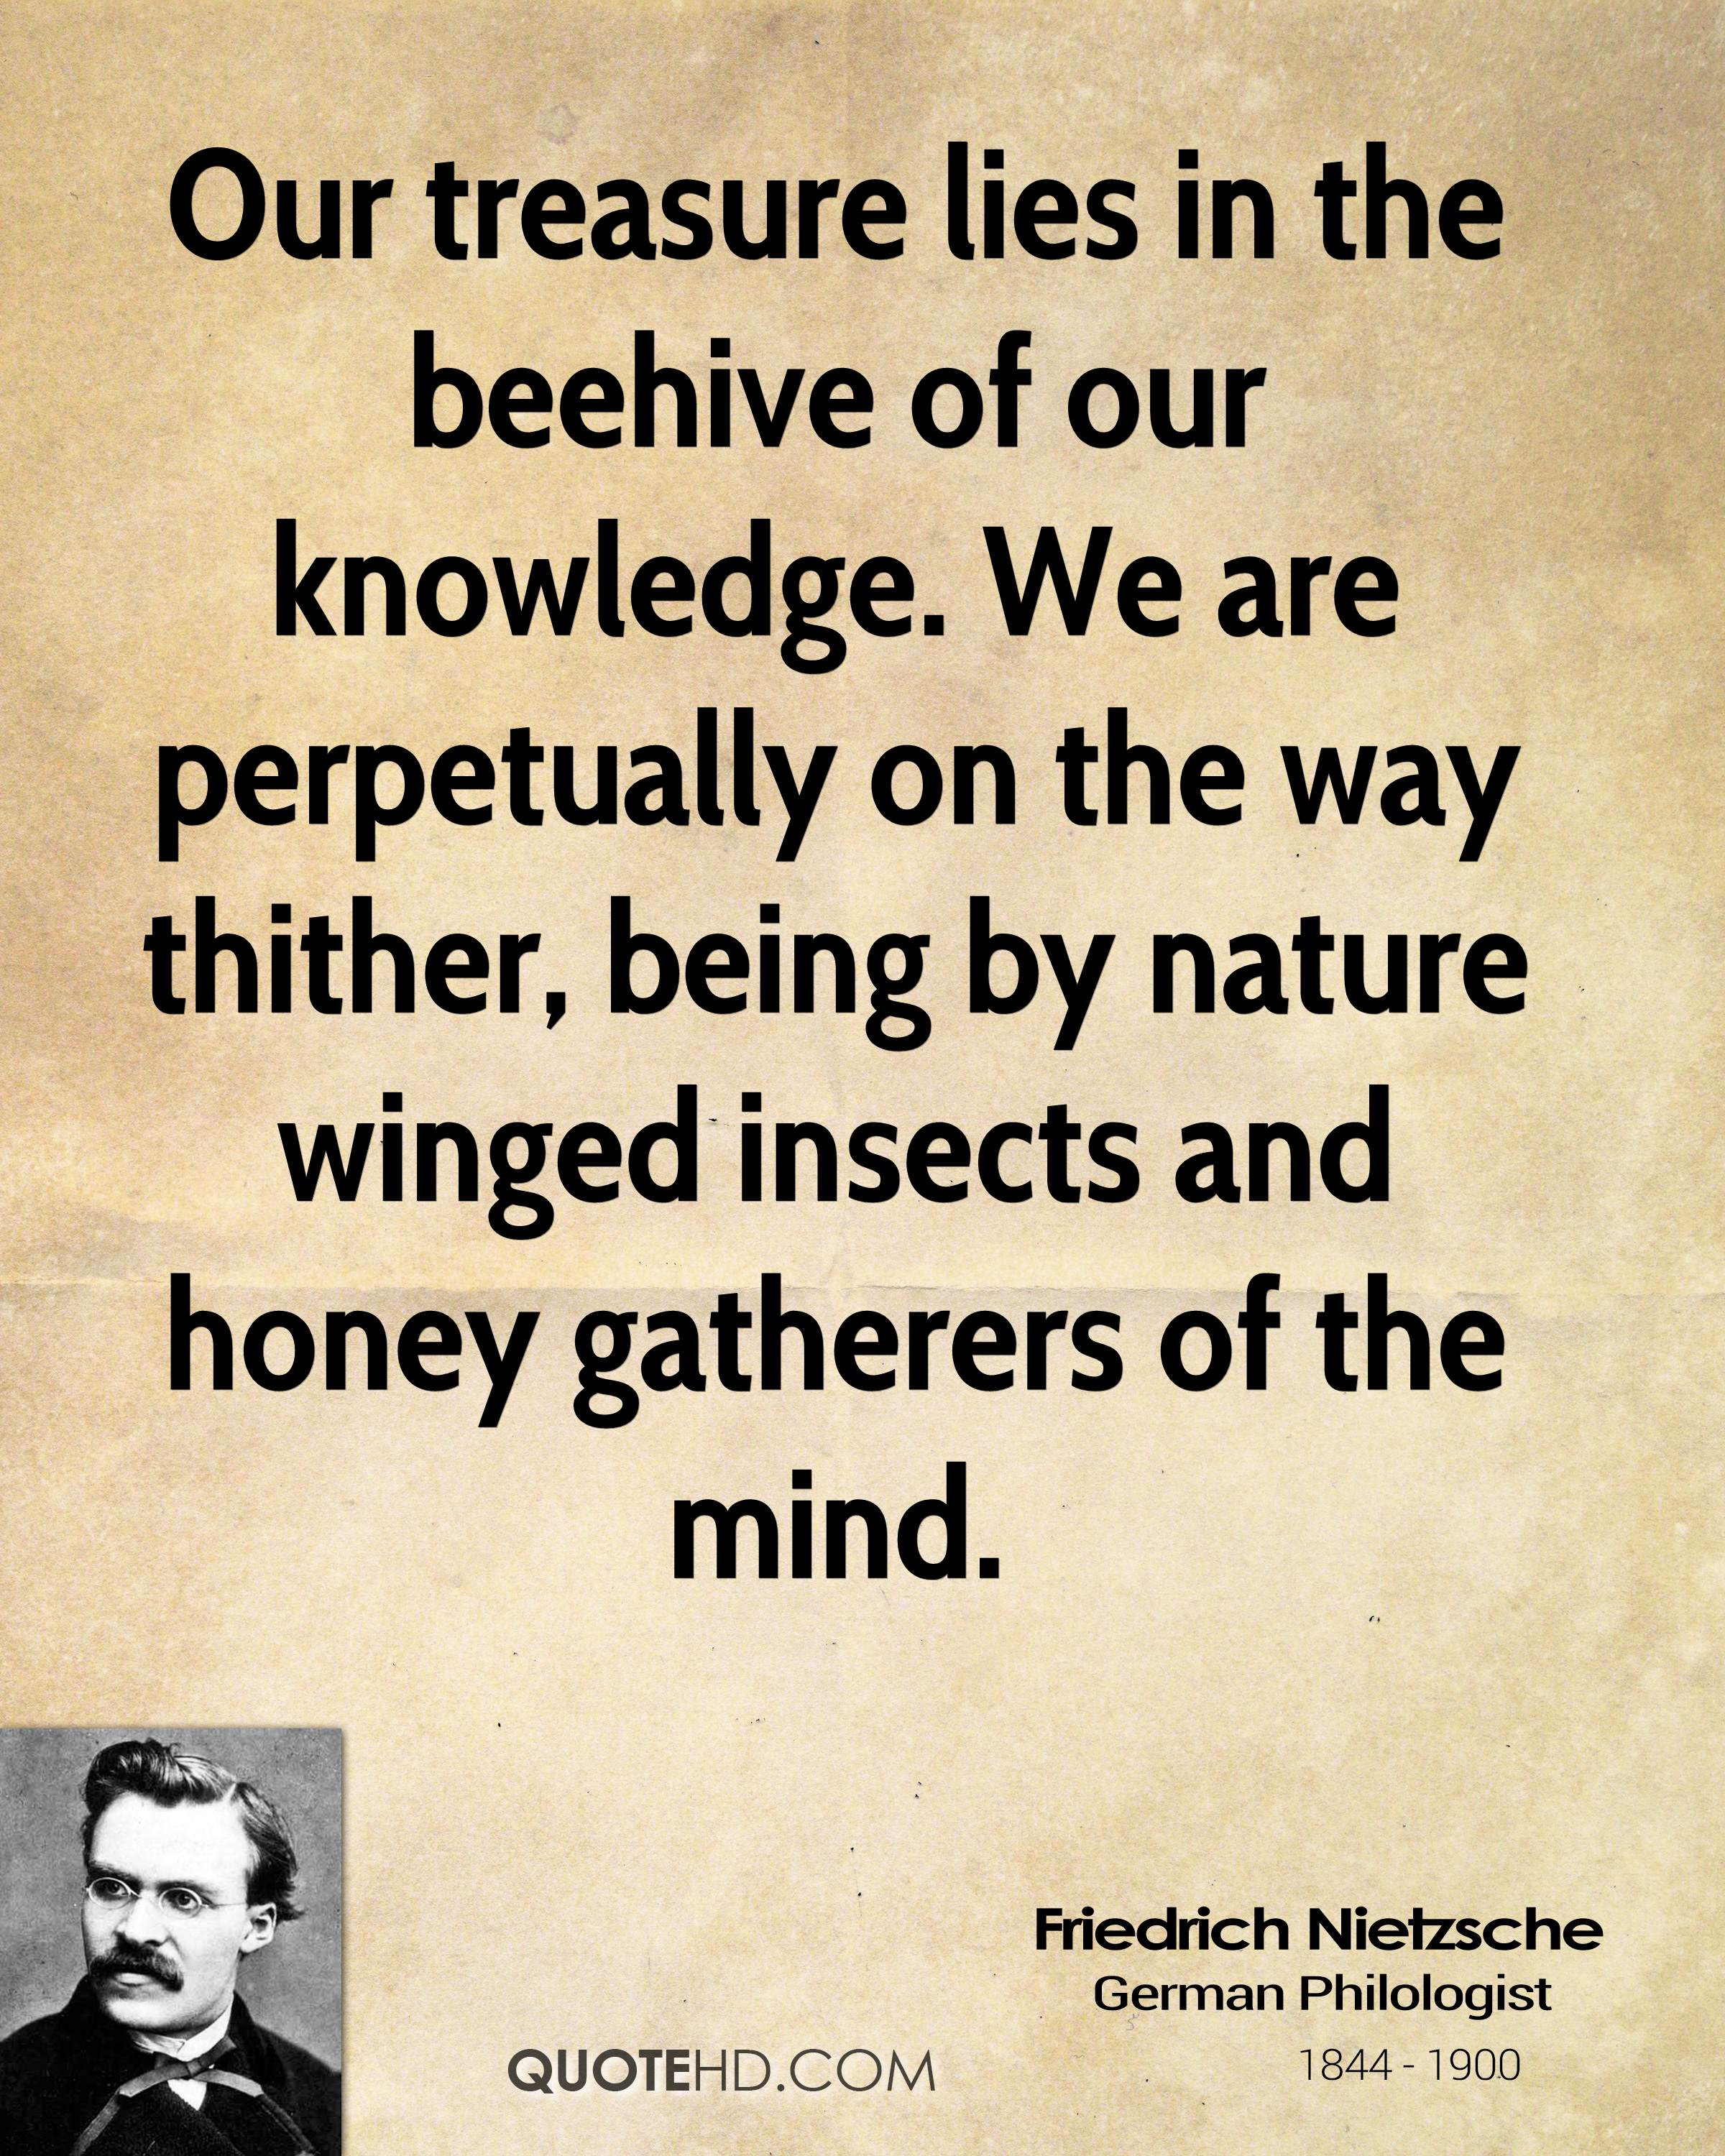 nietzsche on buddhism How is buddhism not nihilism nietzsche and then heidegger said that this was the central phenomenon in the western worldview, and i believe this is correct.